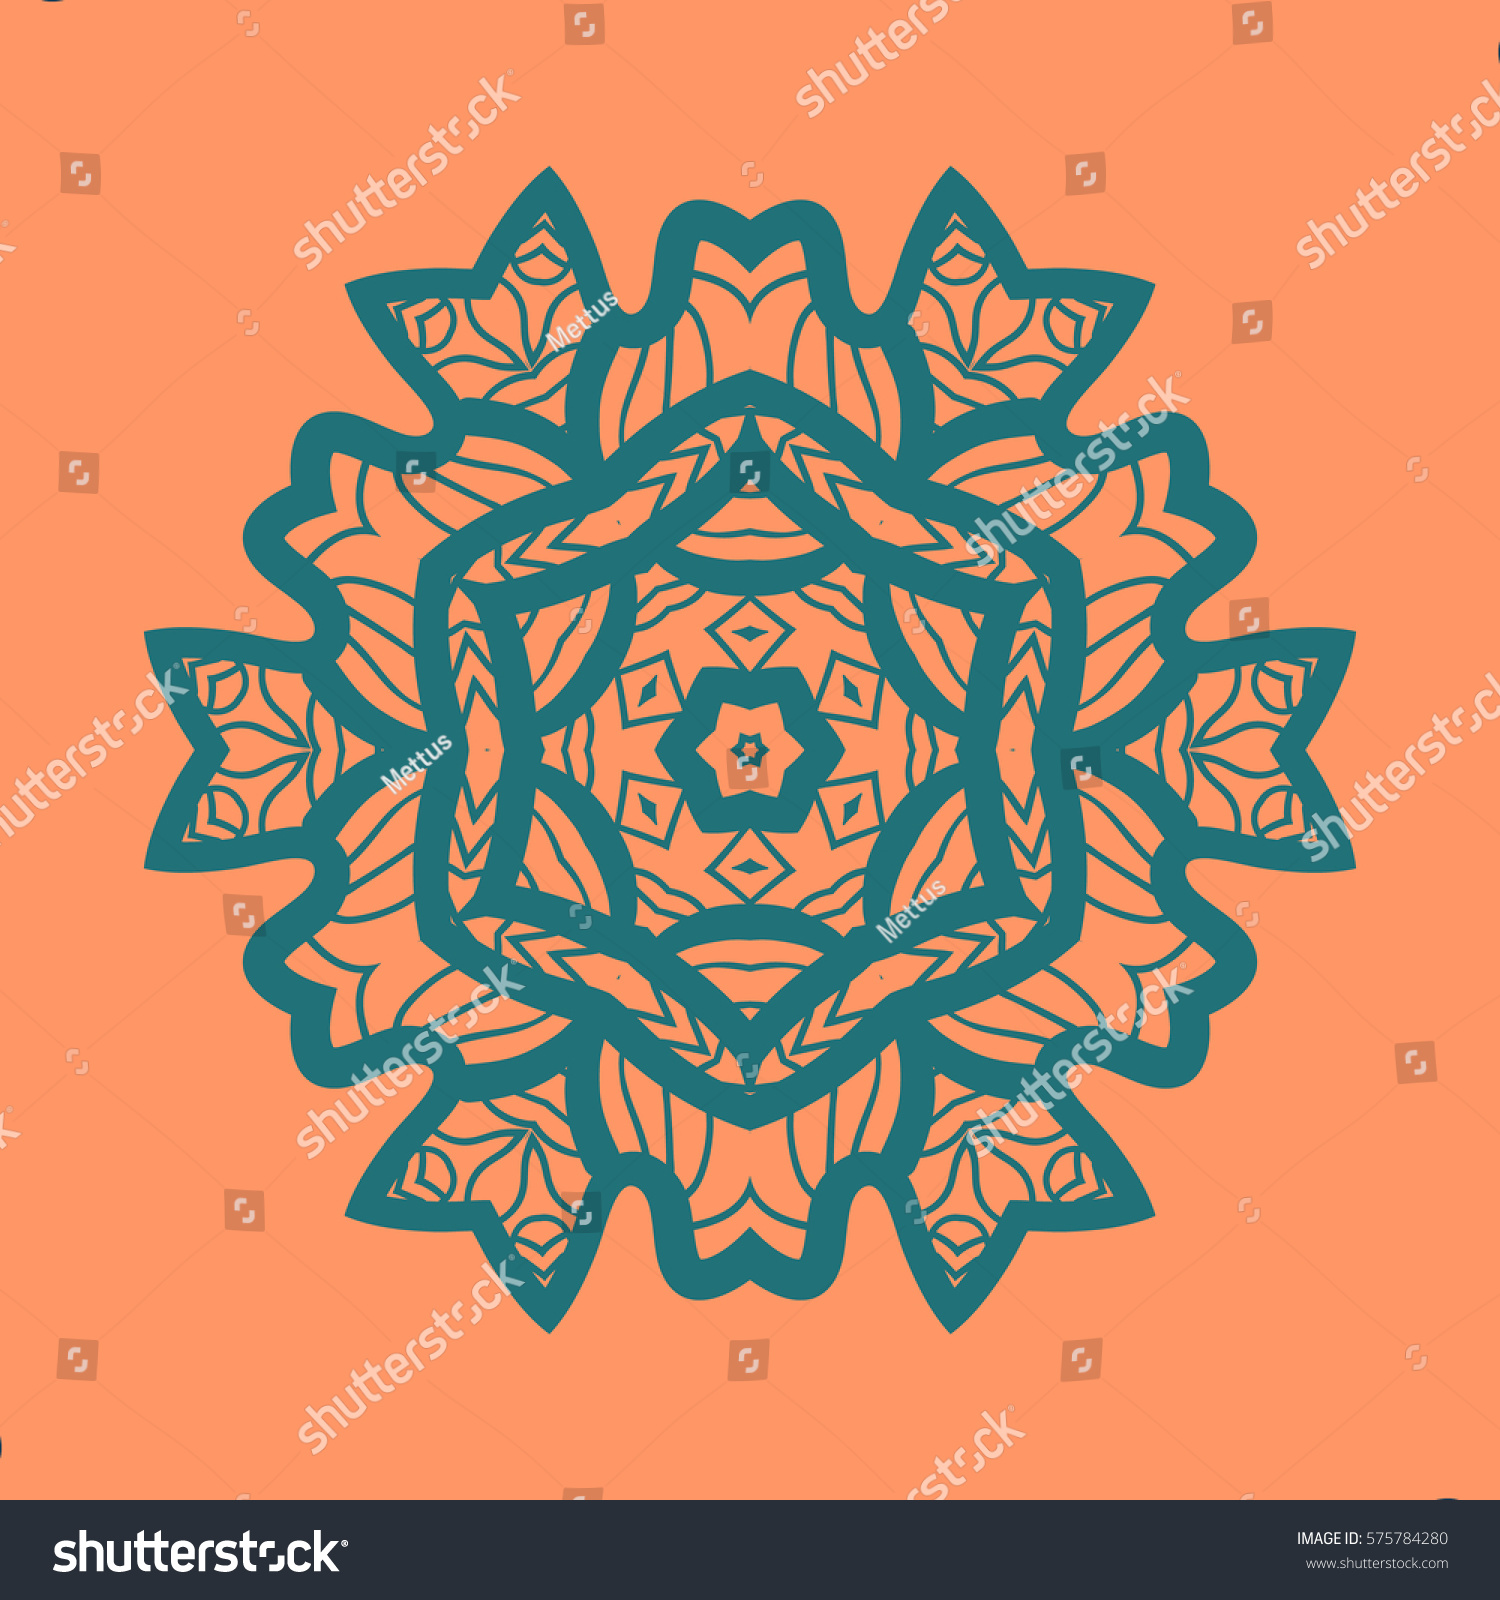 Outlined Print On Orange Color Background Mandala Flower For Colouring Work Relaxation Adult Zentangle